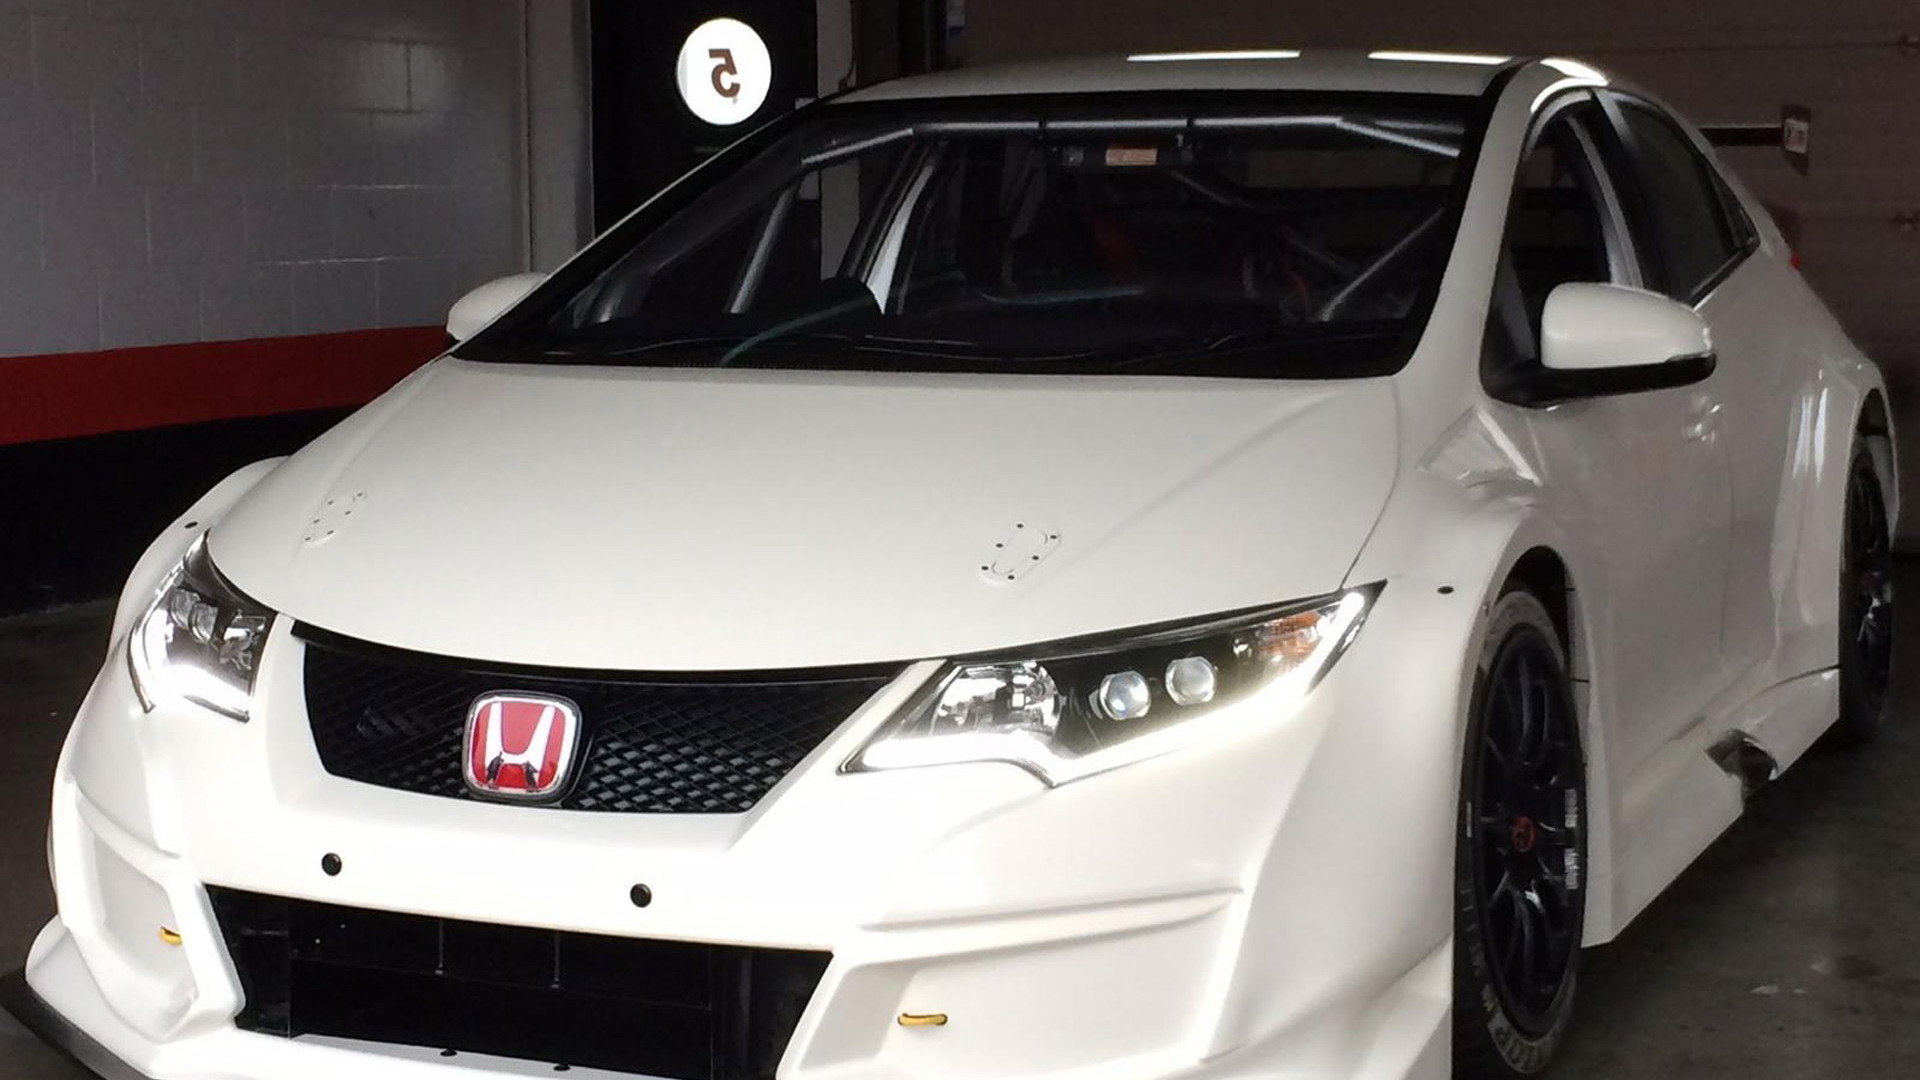 2015 Honda Civic Type R BTCC race car